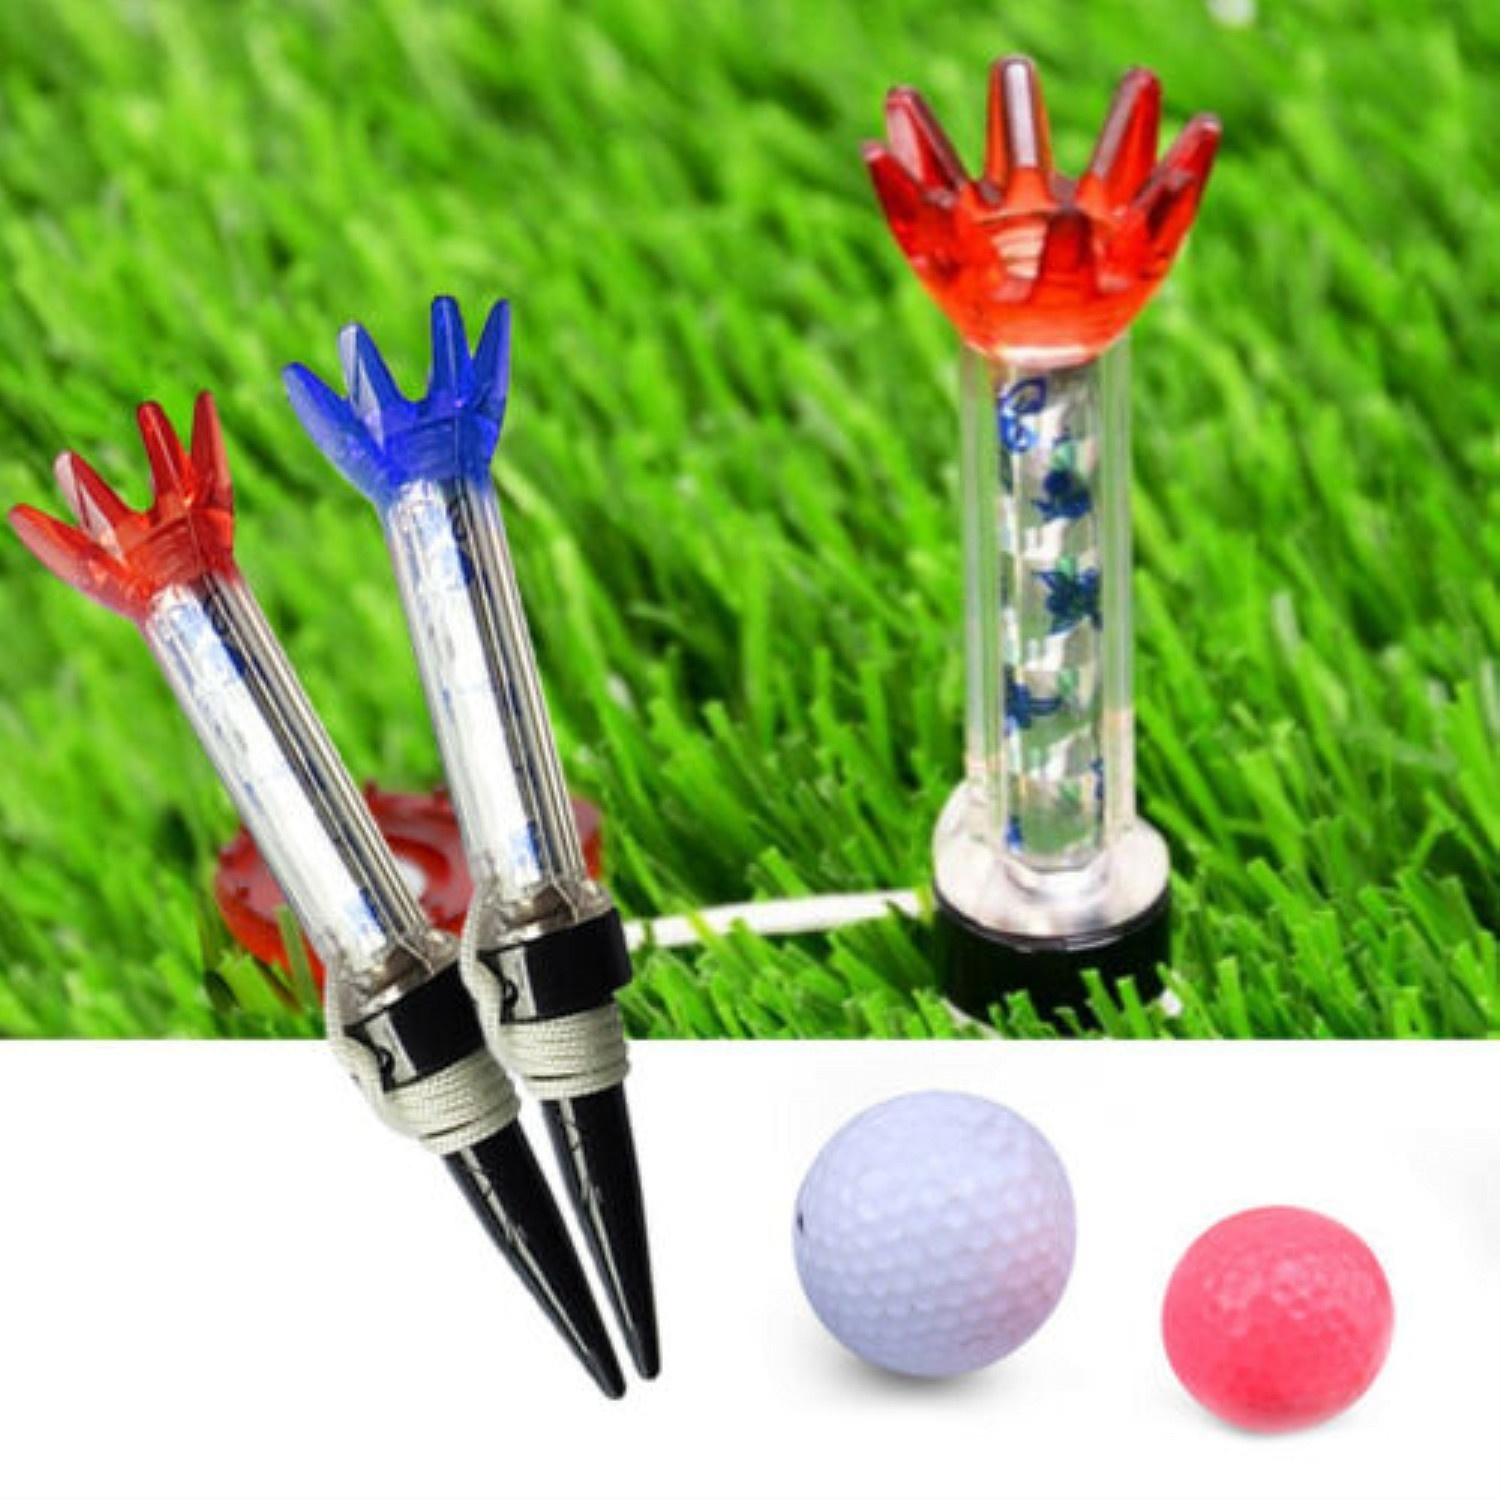 Golf Magnet Tees Value 2 Pcs Magnetic Step Down Tee With Anchor Outdoor Golf Accessories